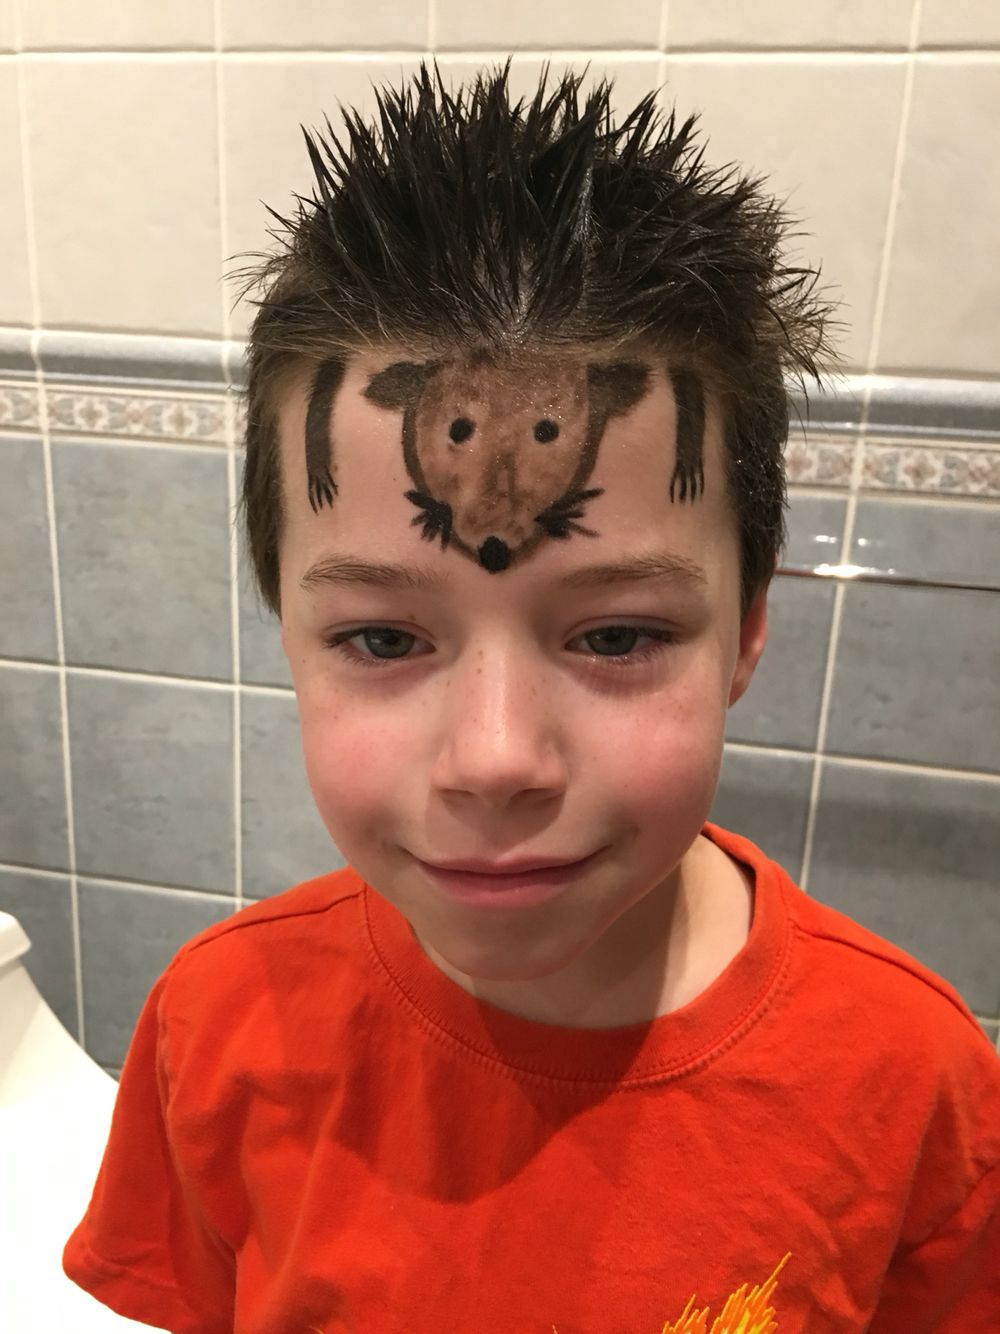 Crazy Hair Day For Boys Hedgehog Spikes Momspiration Halloween